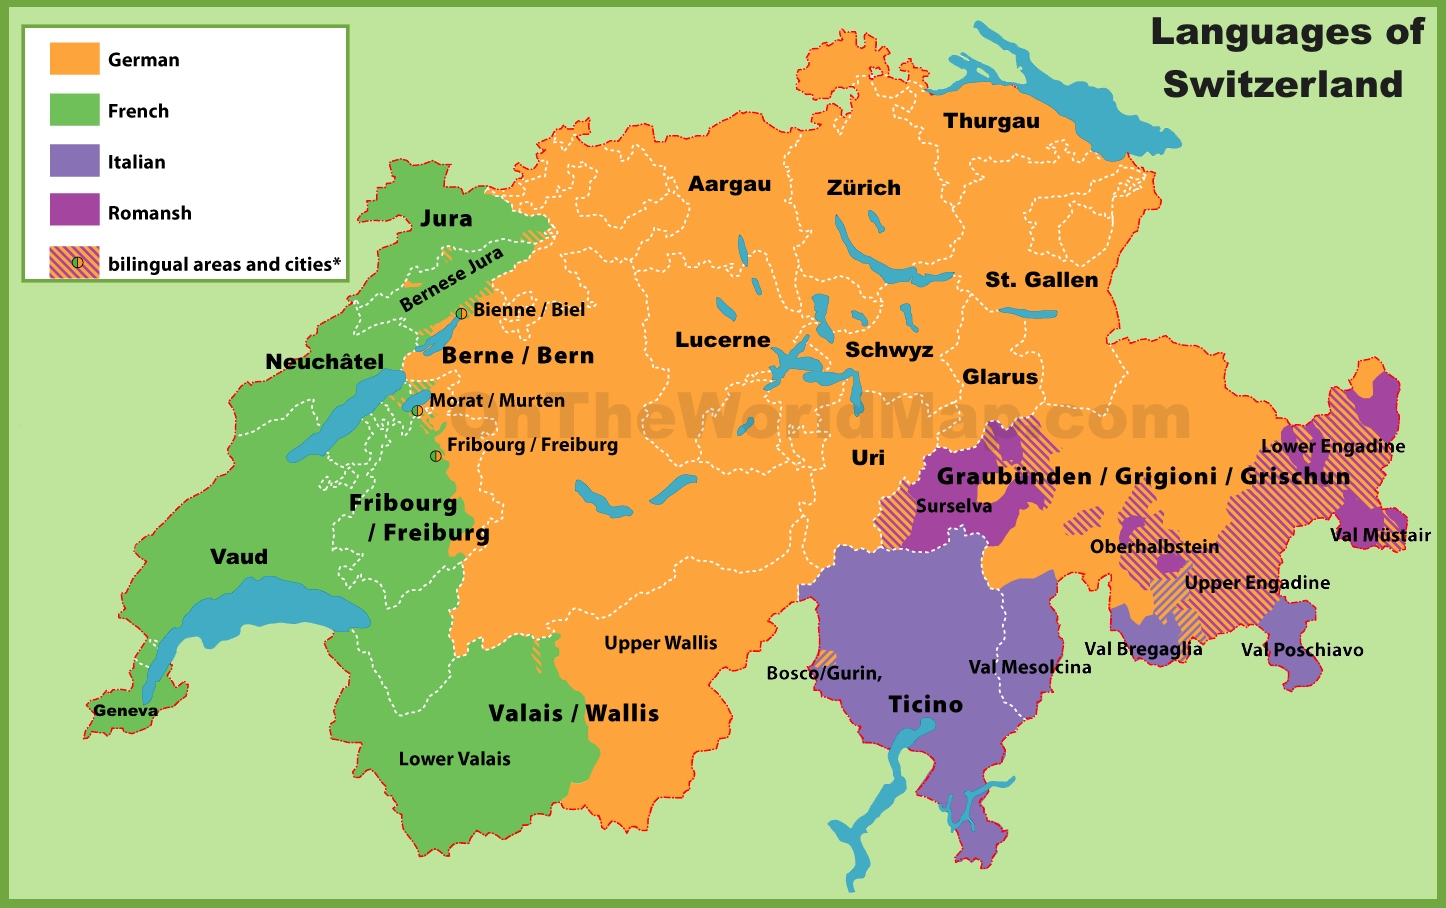 Map of languages in Switzerland Cities Map Switzerland on map spain cities, map tx cities, map with cities, map china cities, map europe, map france cities, map equatorial guinea cities, switzerland largest cities, map italy cities, map georgia cities, map of the usa cities, map germany cities, switzerland alps cities, map az cities, map japan cities, map jordan cities, switzerland capital and major cities, map india cities, map ireland cities, map england cities,